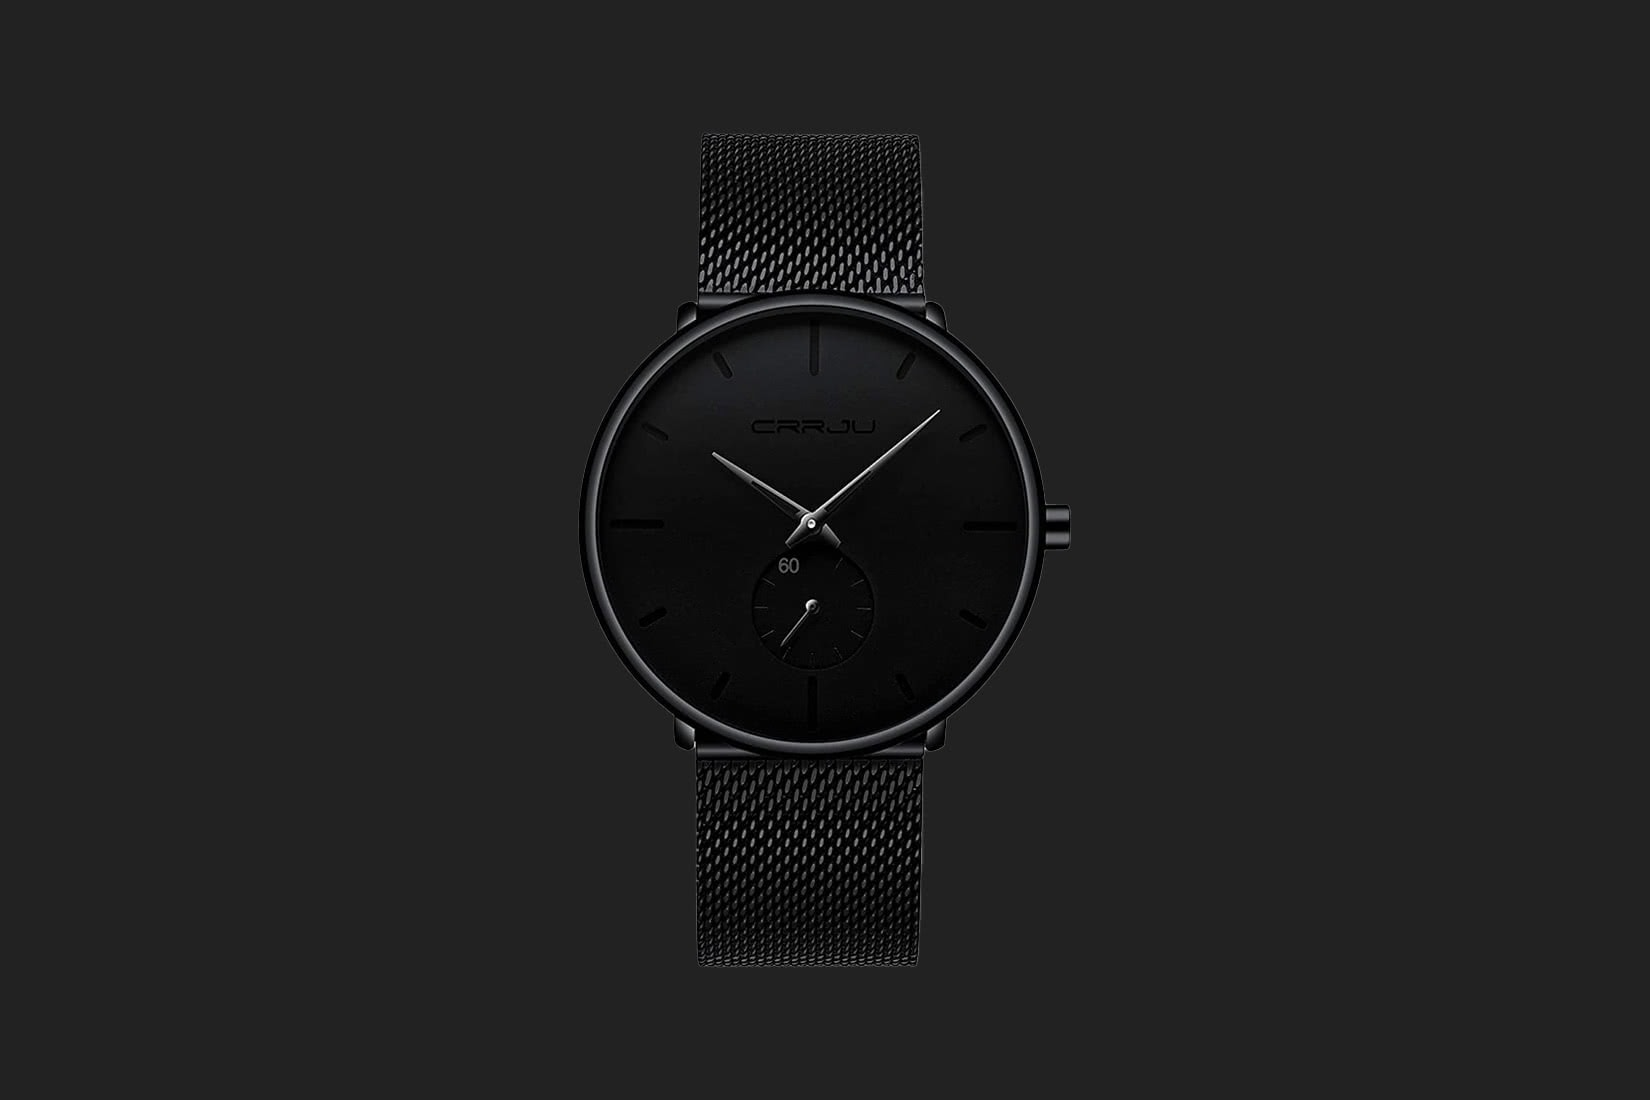 best men watches fizili ultra thin review - Luxe Digital